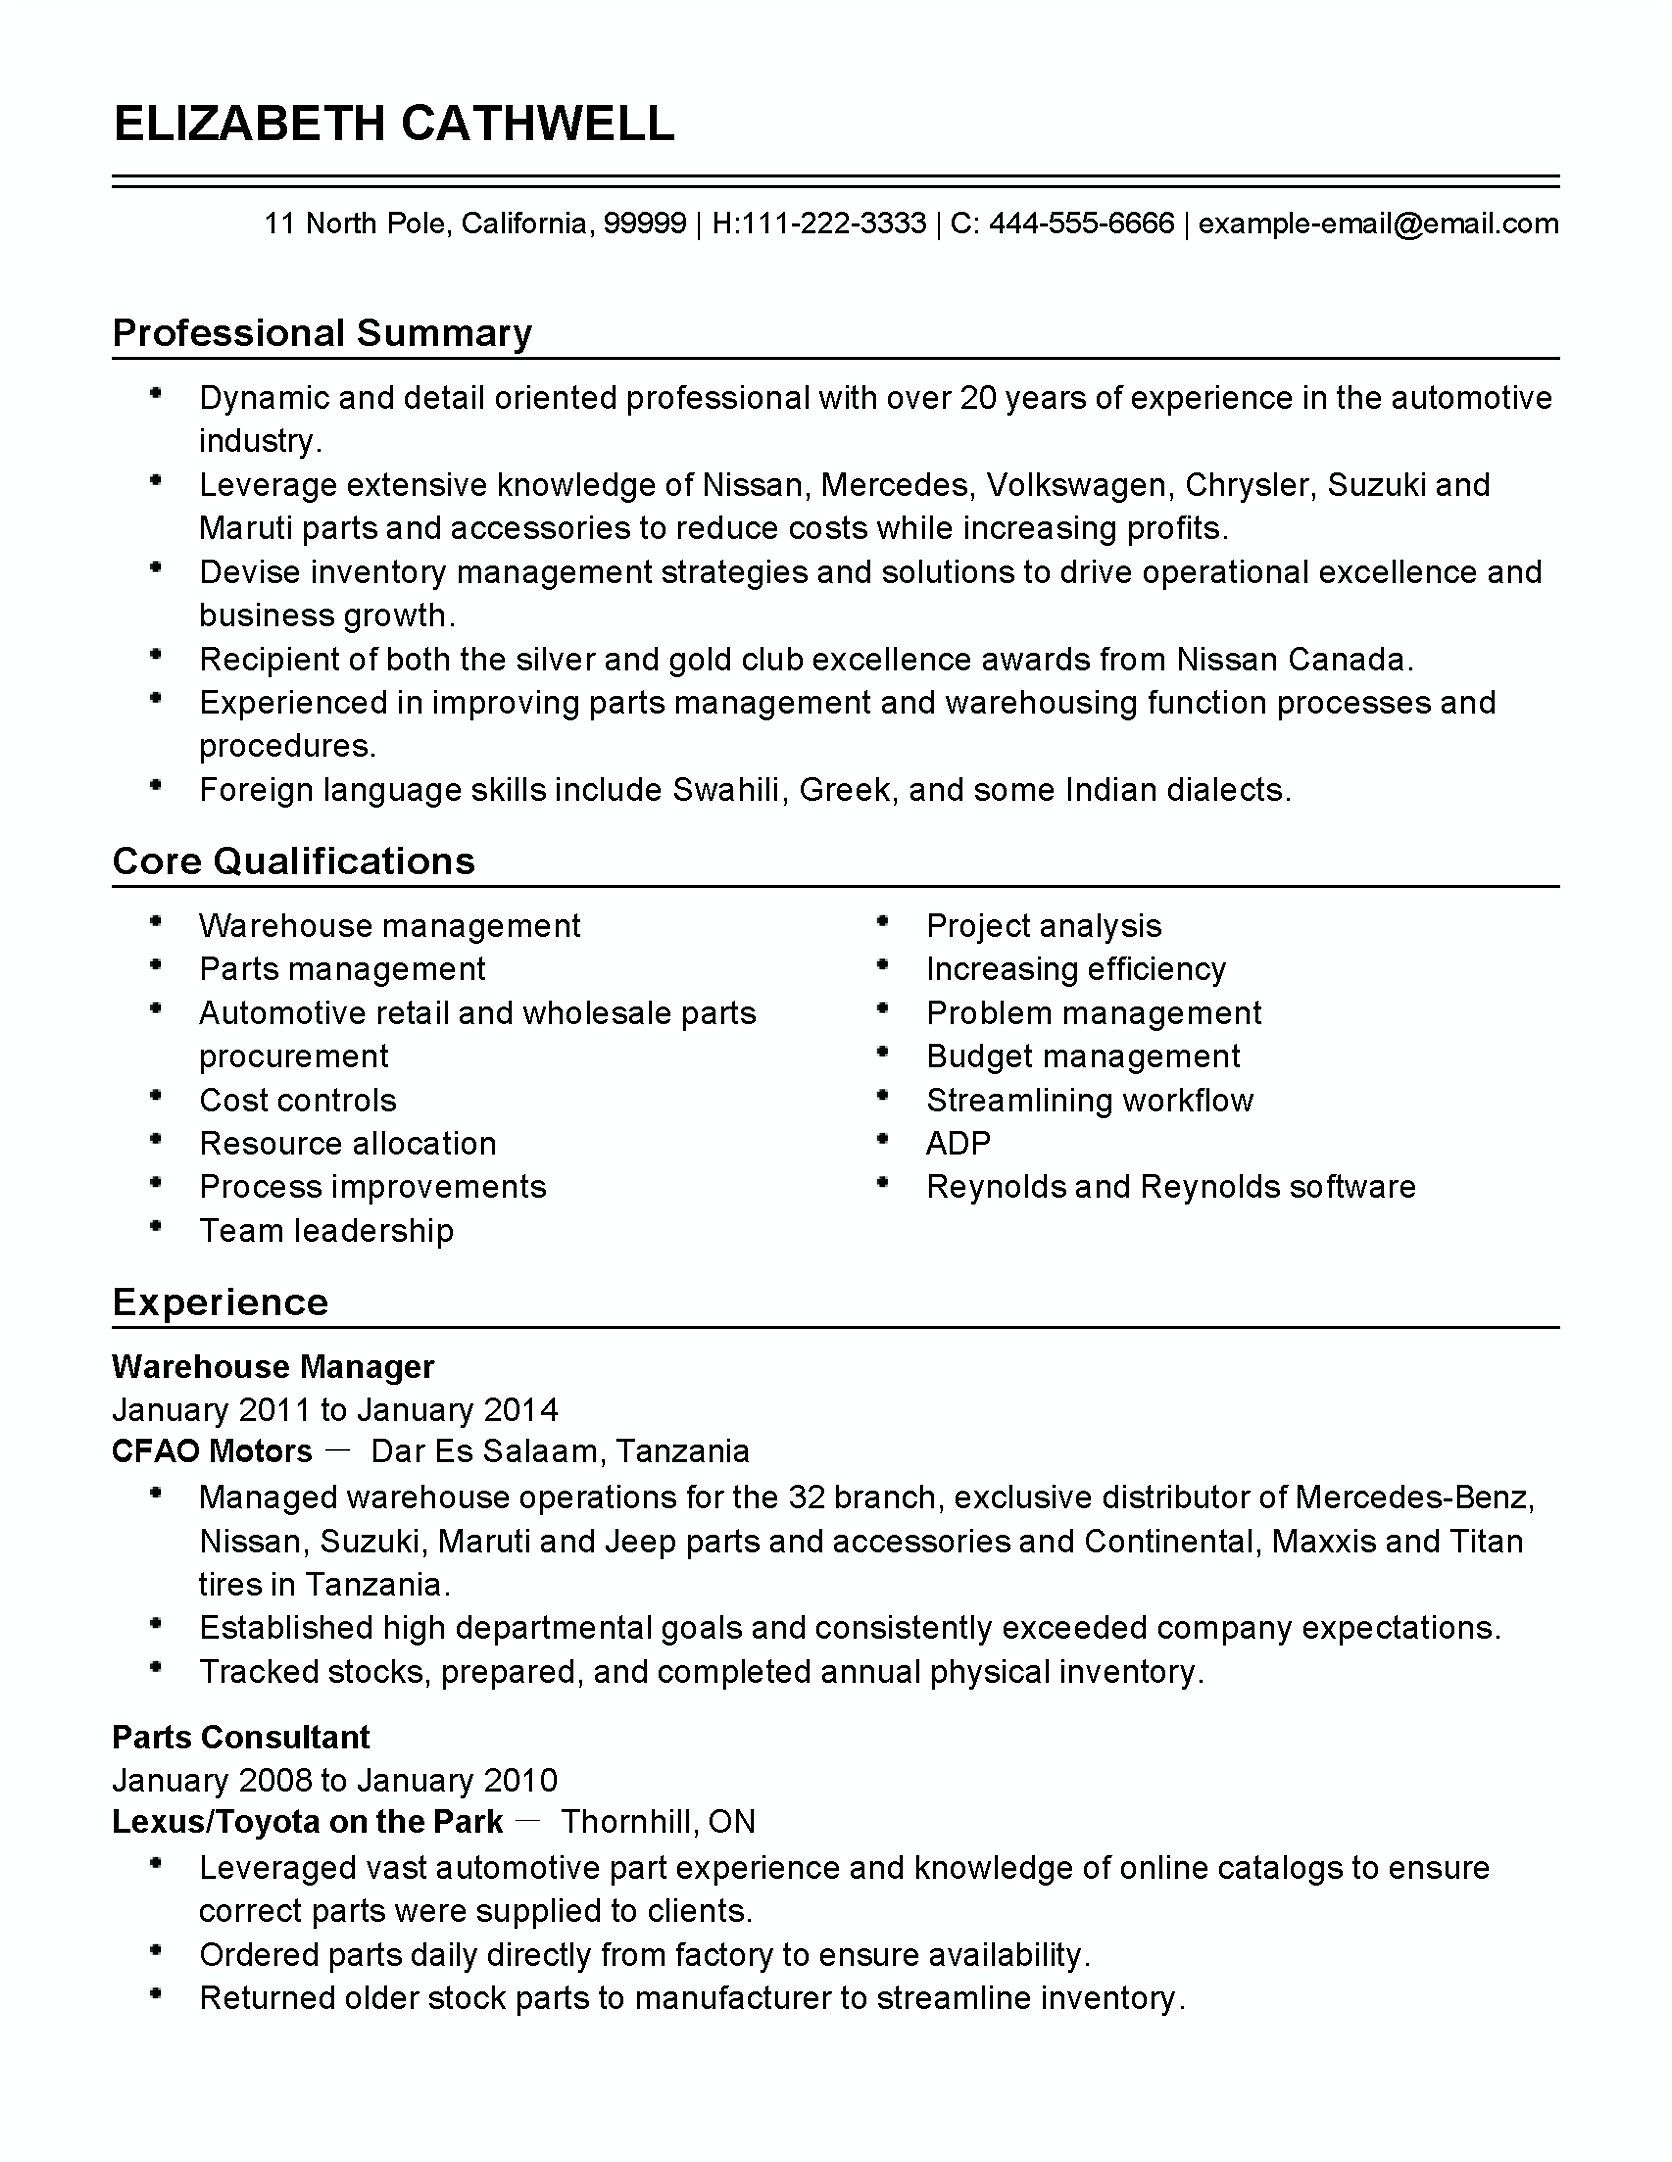 We Offer You Inventory Manager Resume Article For More Information To Apply The Job